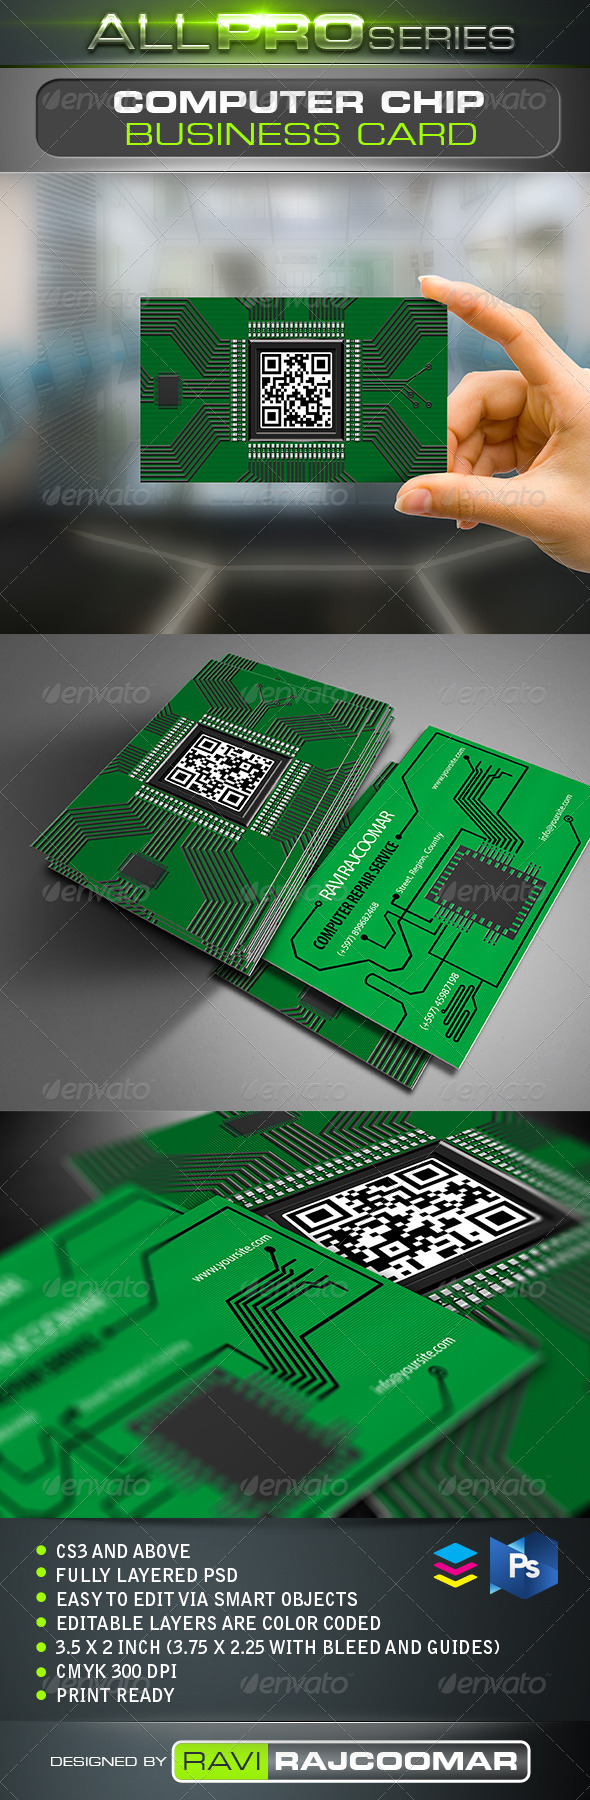 Circuit Board Business Card by ravi-rajcoomar | GraphicRiver